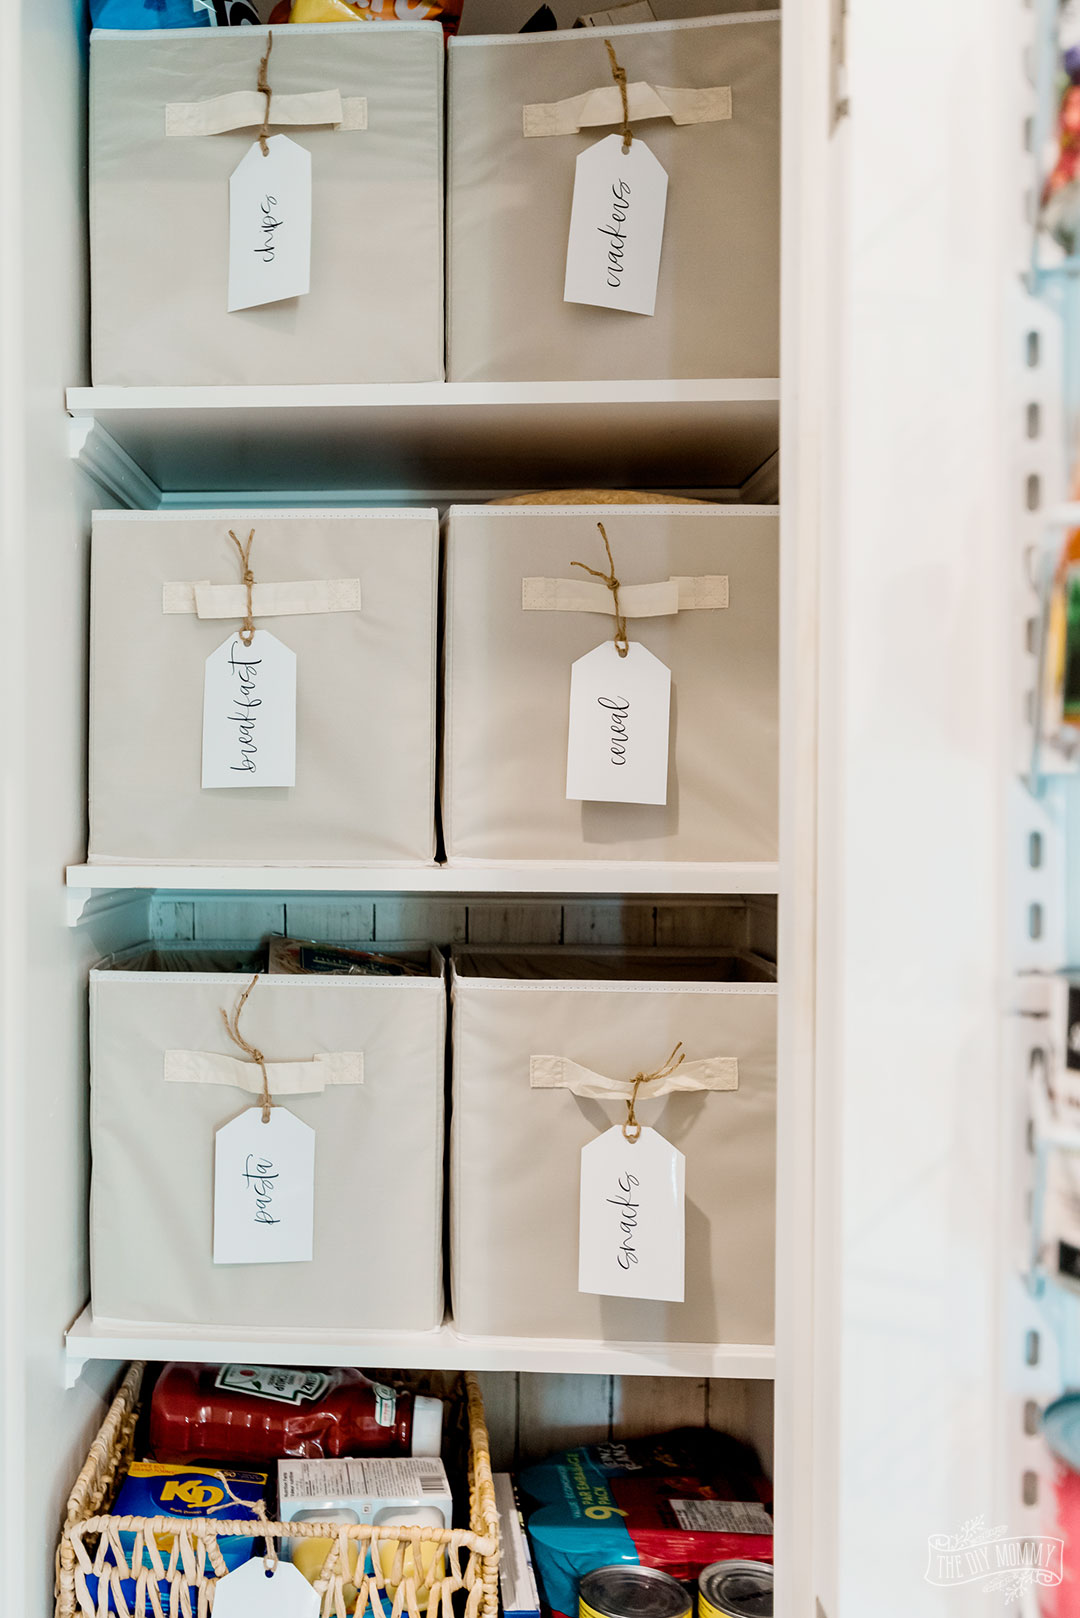 Download these free pantry organization tags in a simple modern farmhouse style.